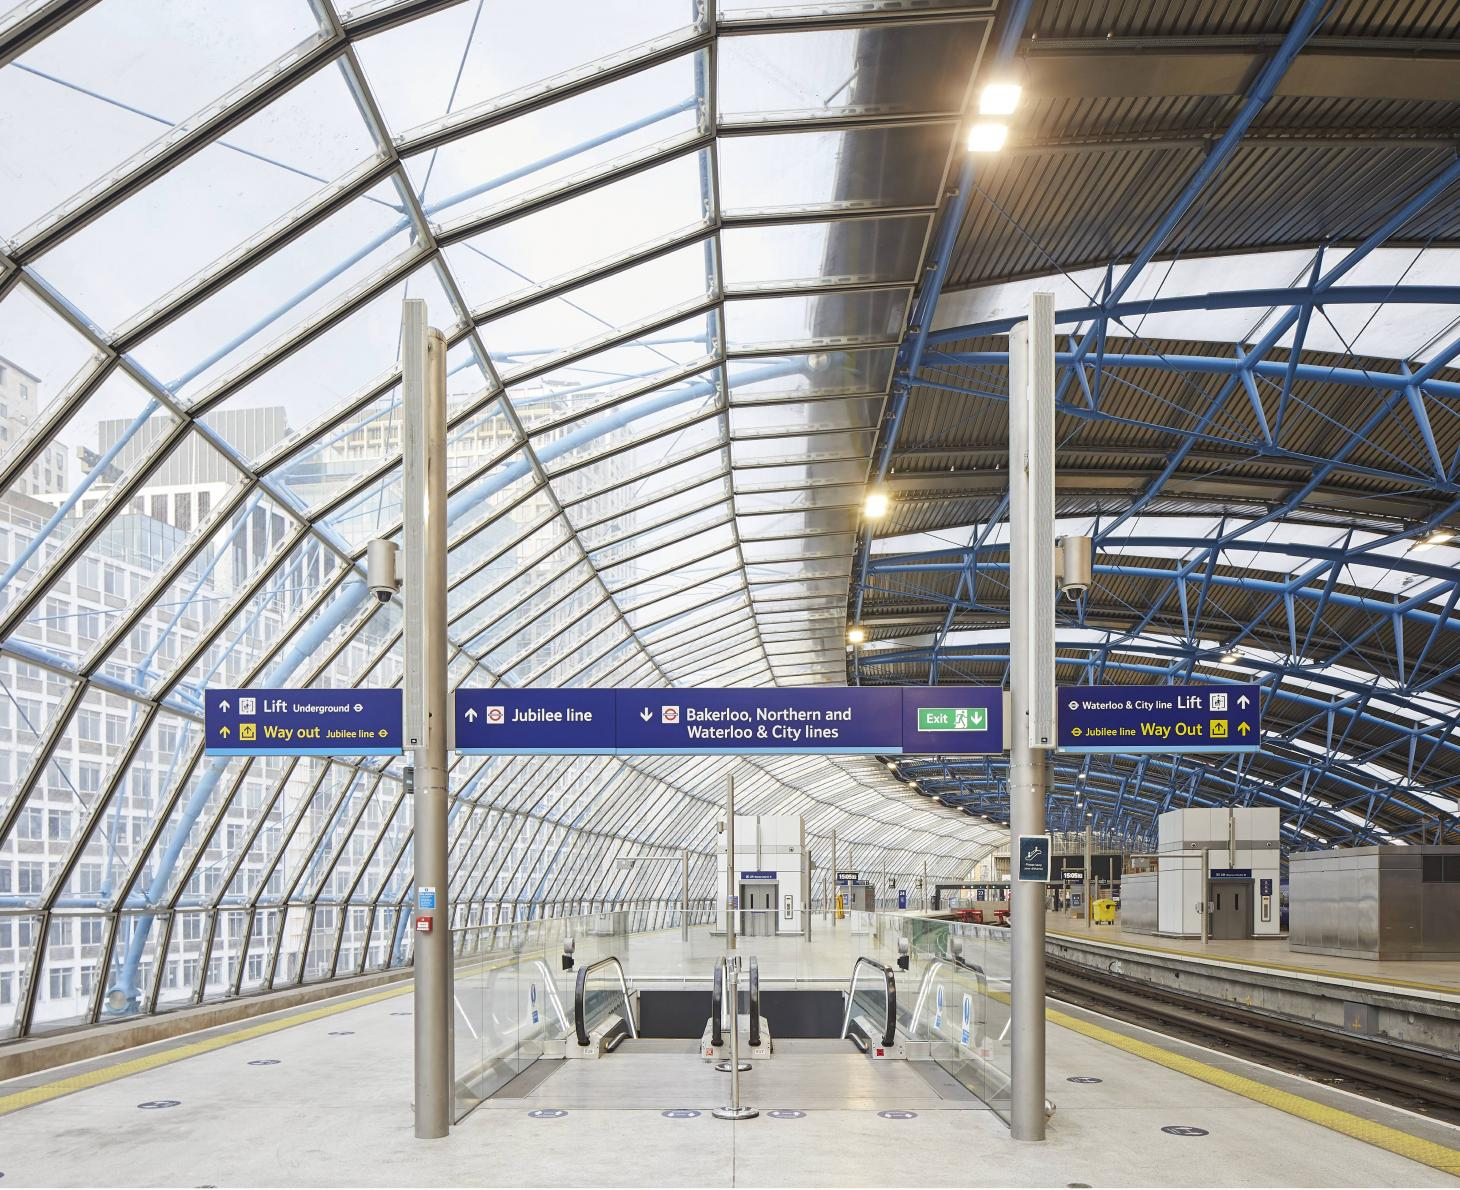 The curving original structure of the former Waterloo International has been refurbished and brought back into daily use